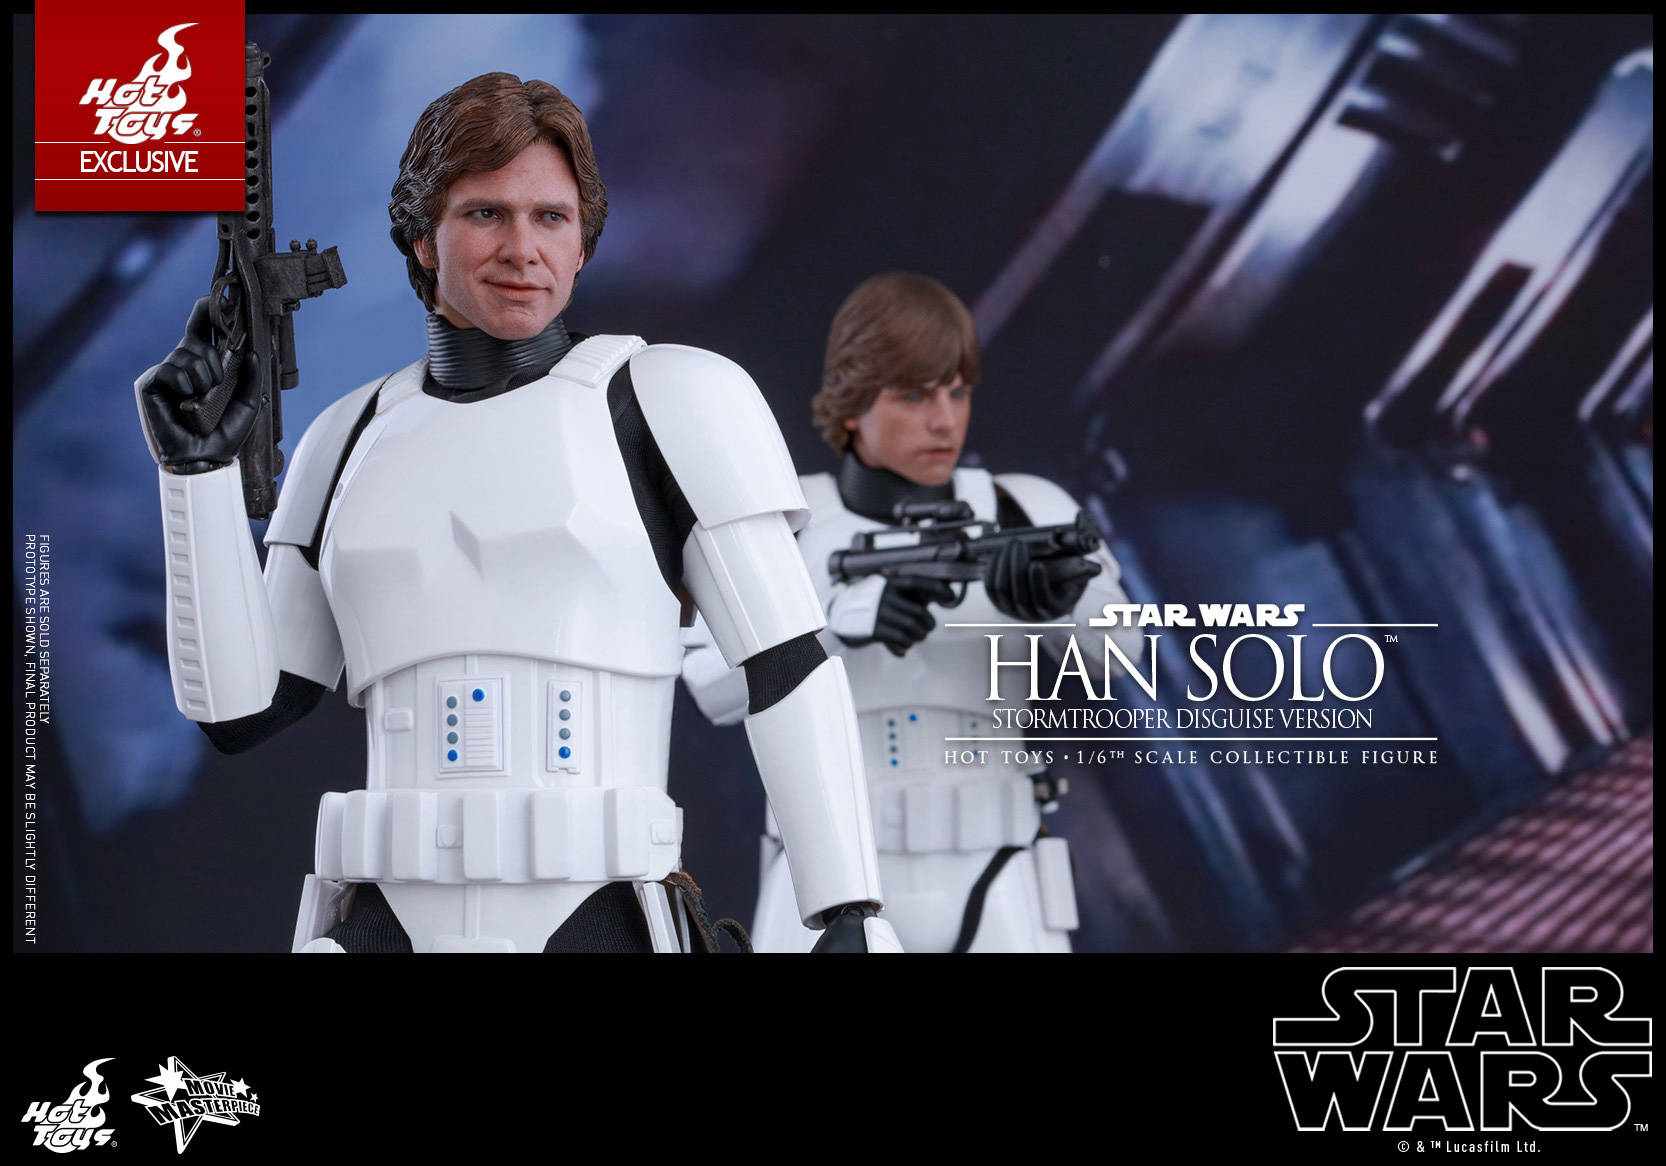 Hot-Toys---Star-Wars---Han-Solo-(Stormtrooper-Disguise-Version)-Collectible-Figure PR11